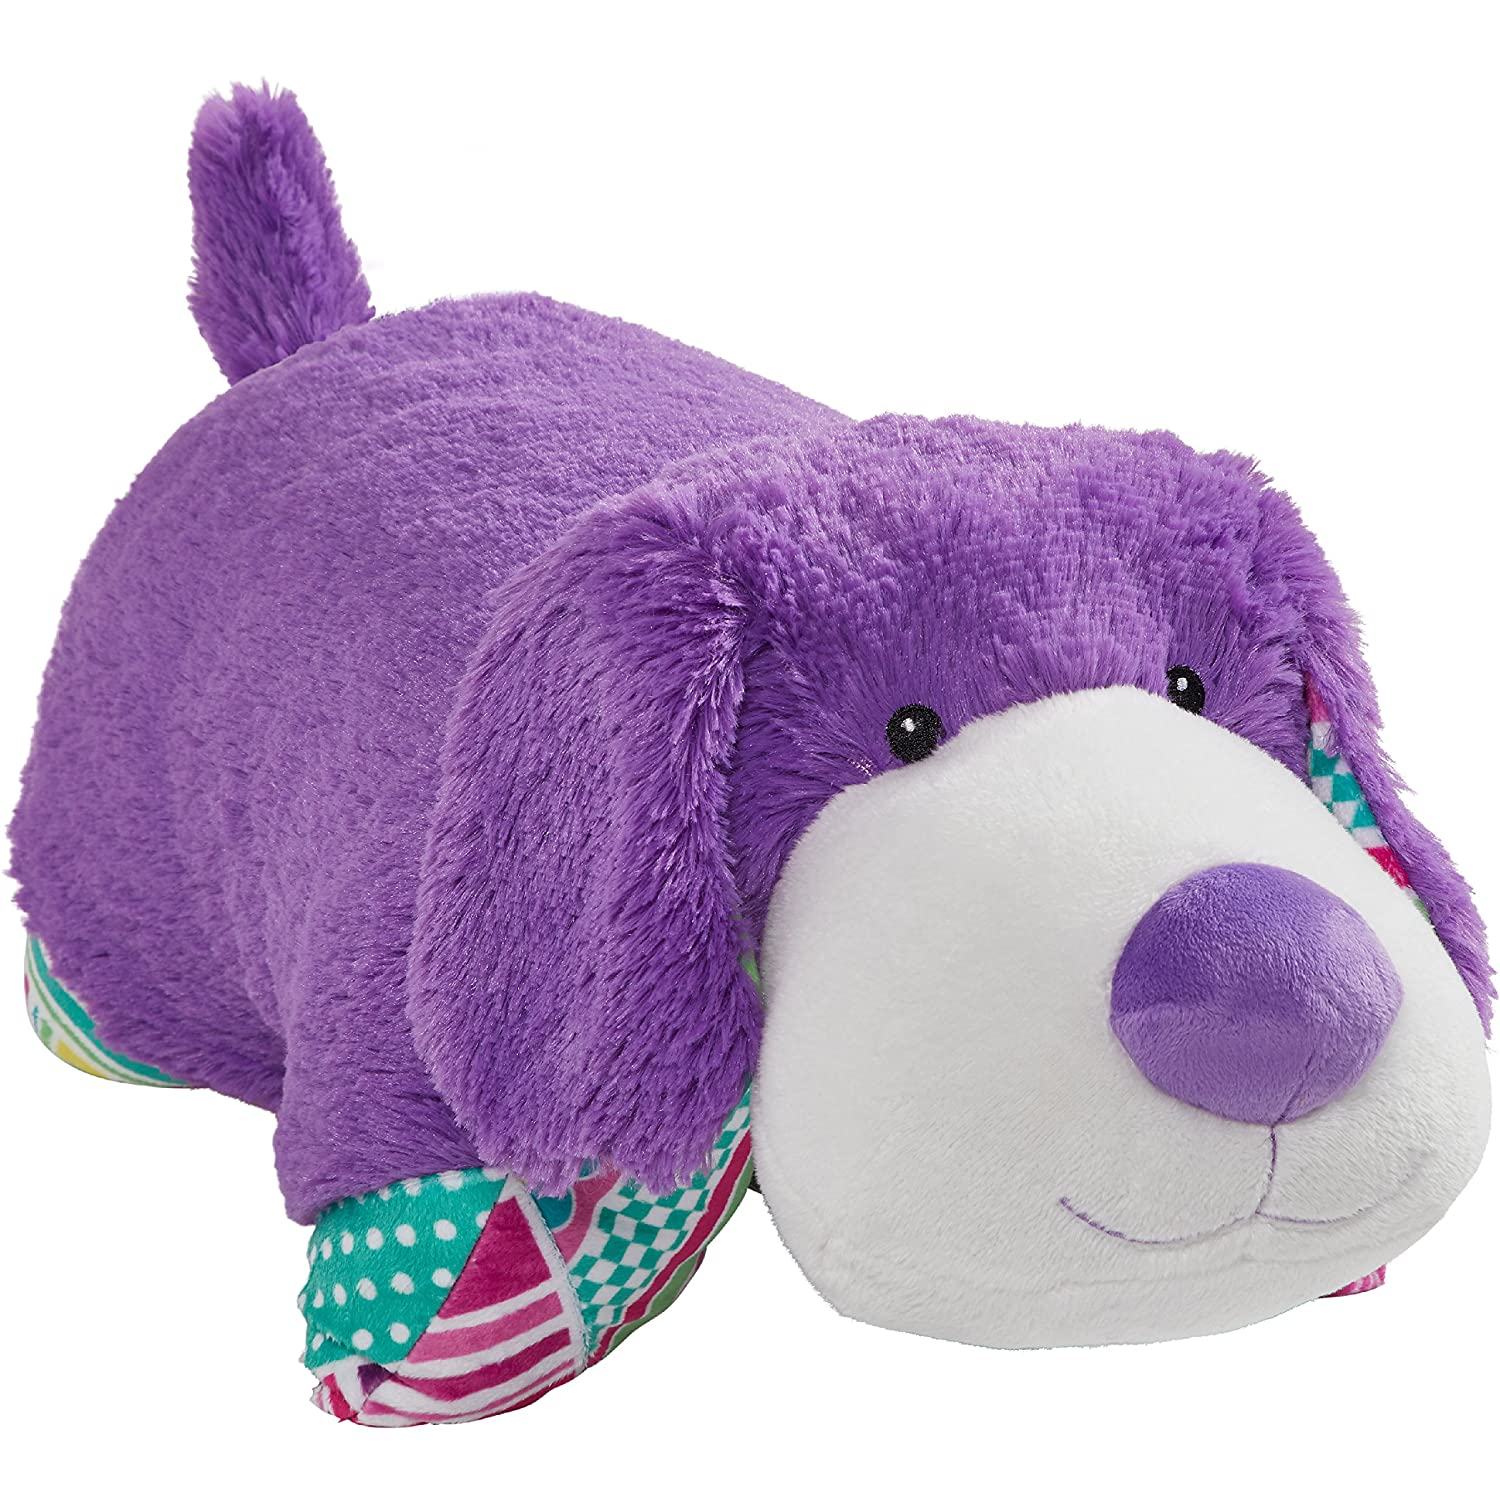 Pillow Pets Colorful Purple Puppy 18 Stuffed Animal Plush Toy